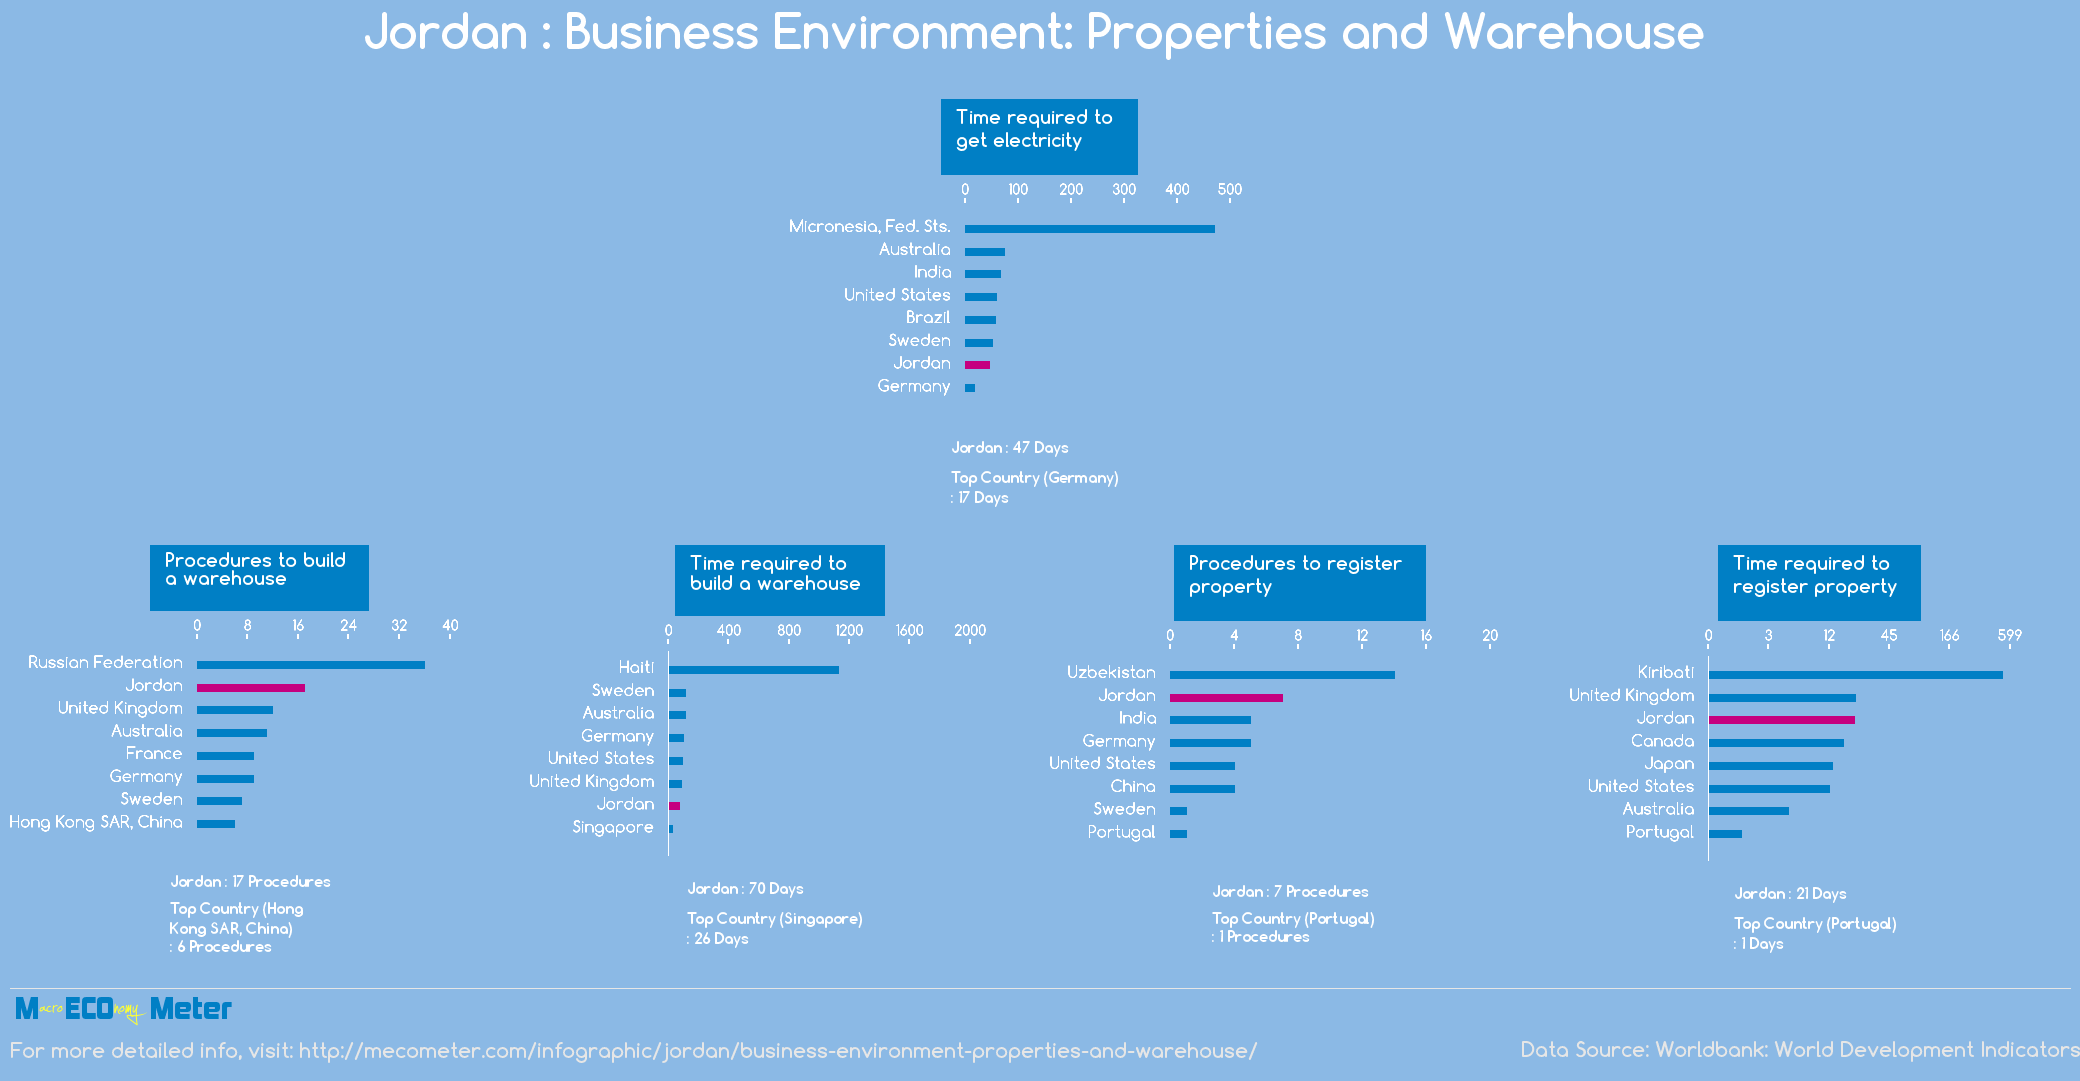 Jordan : Business Environment: Properties and Warehouse